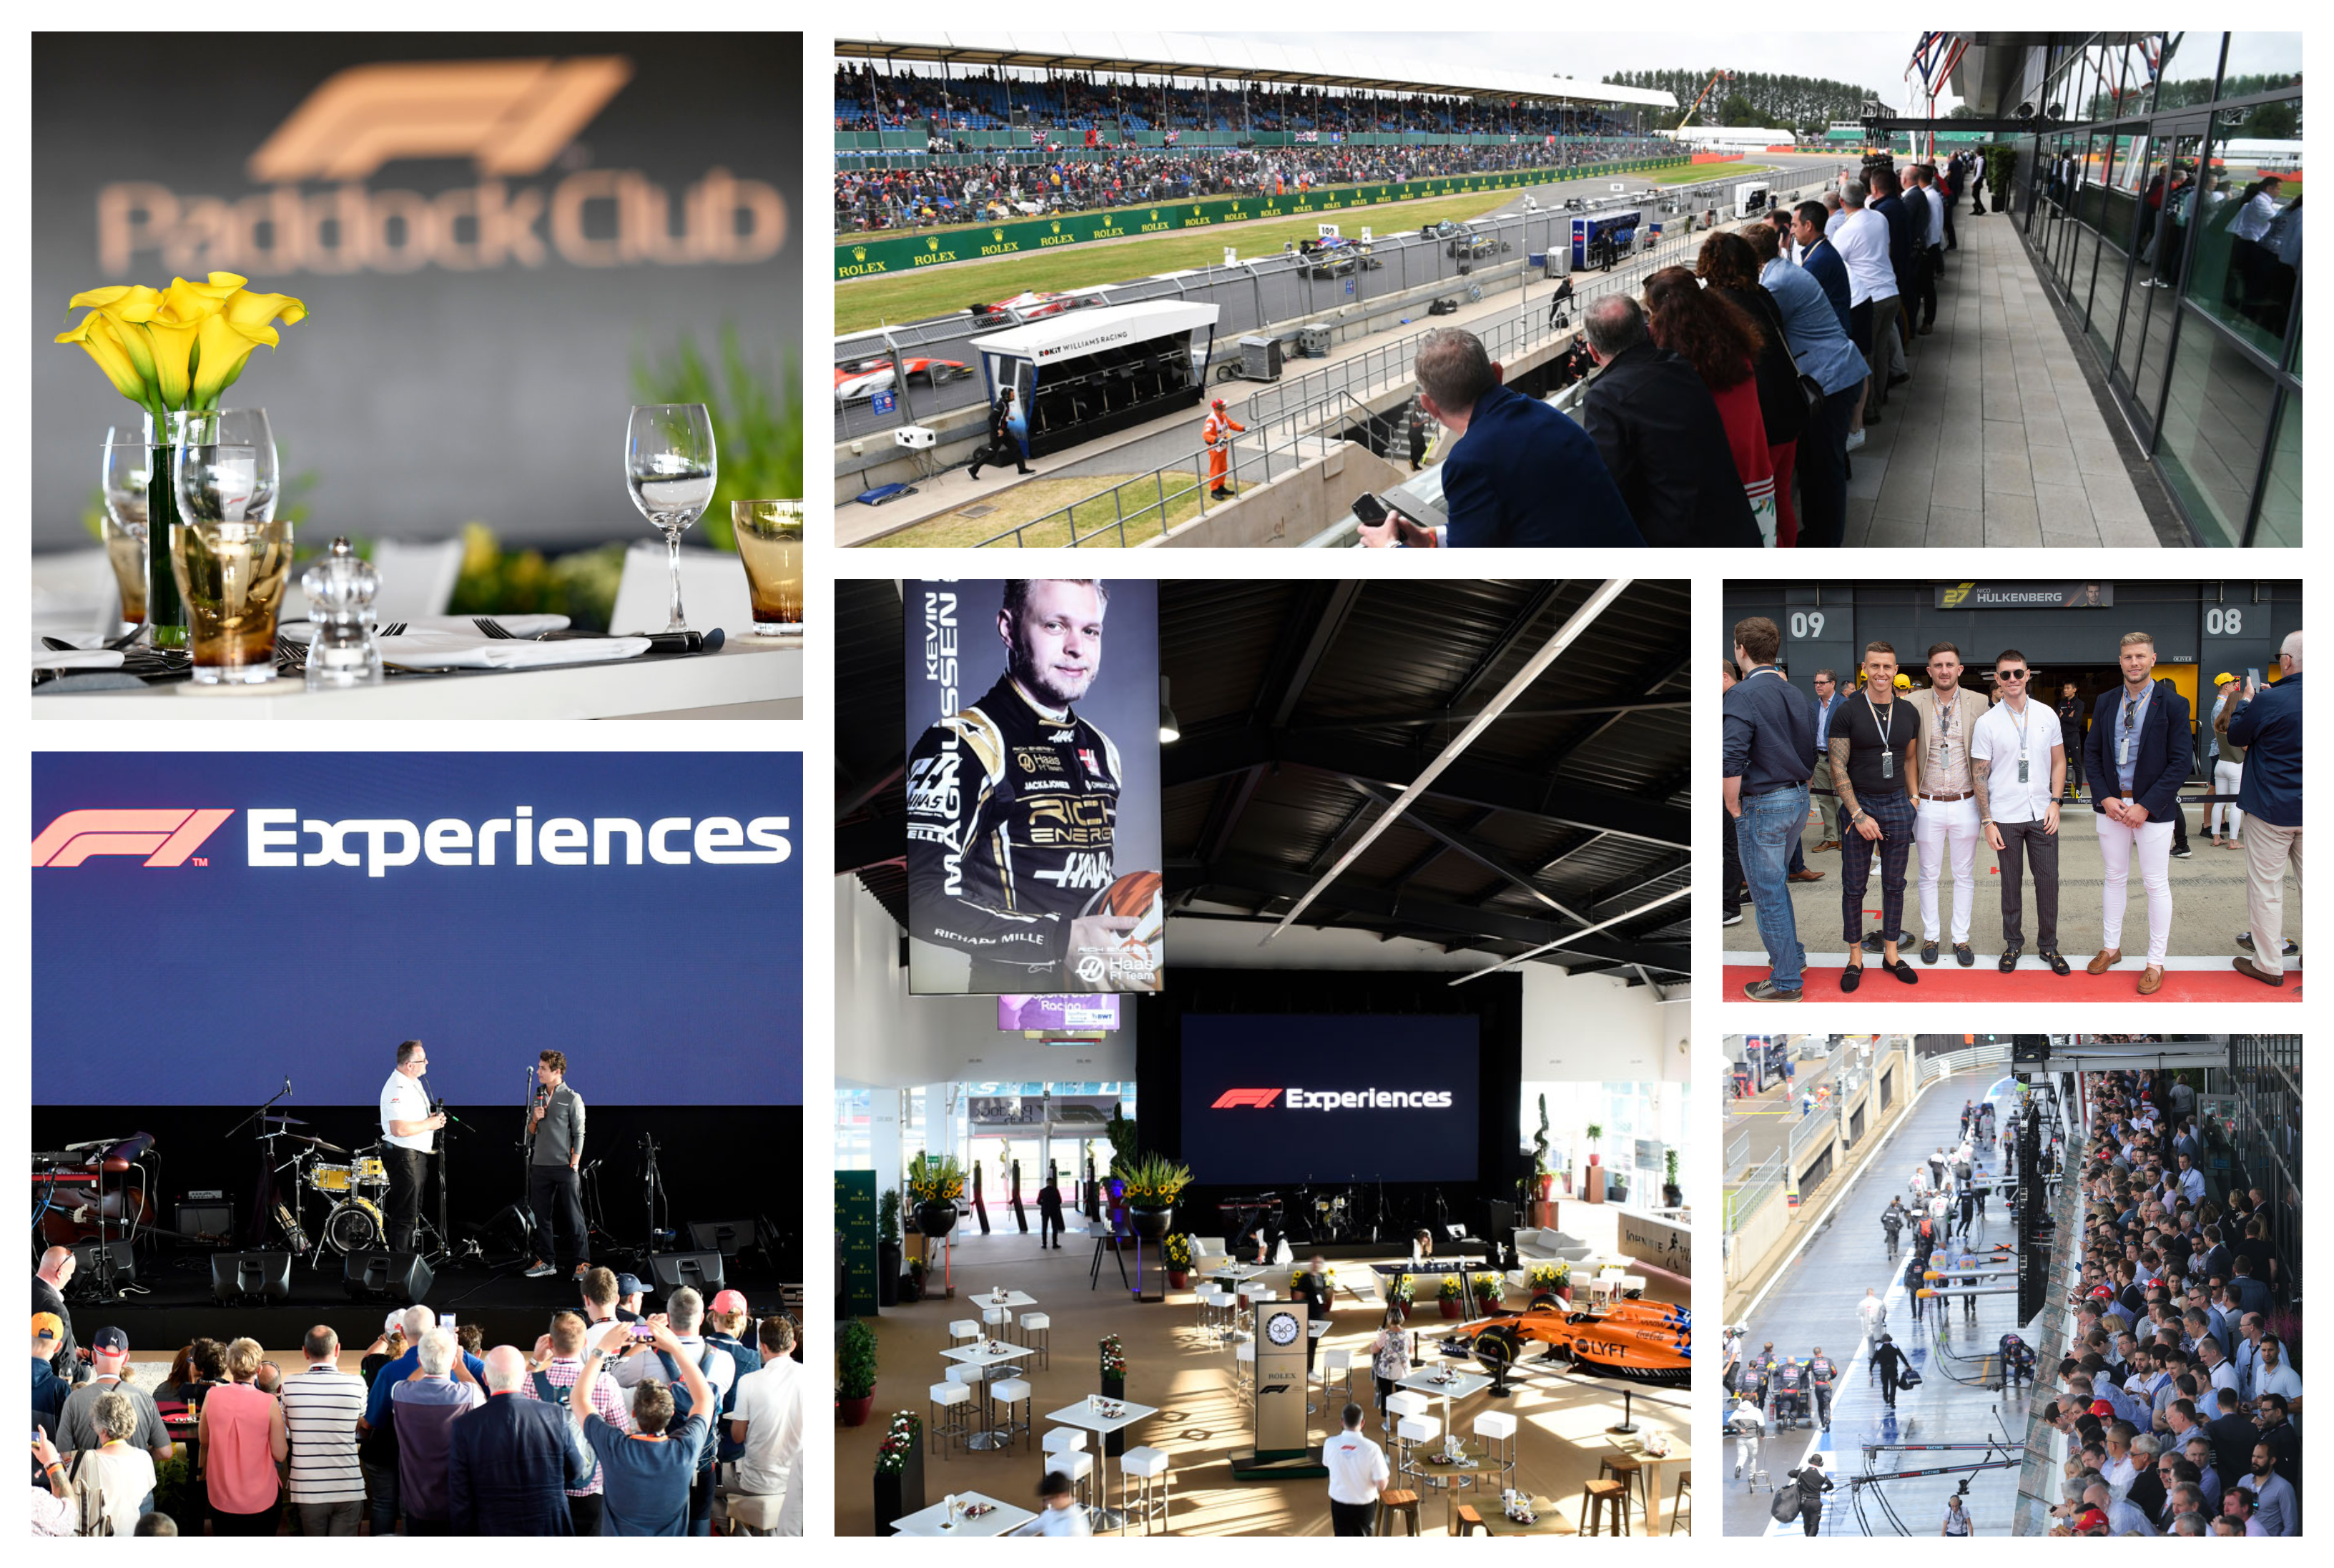 Formule 1 Silverstone 2021 – Paddock Club ™ –  F1® Experiences